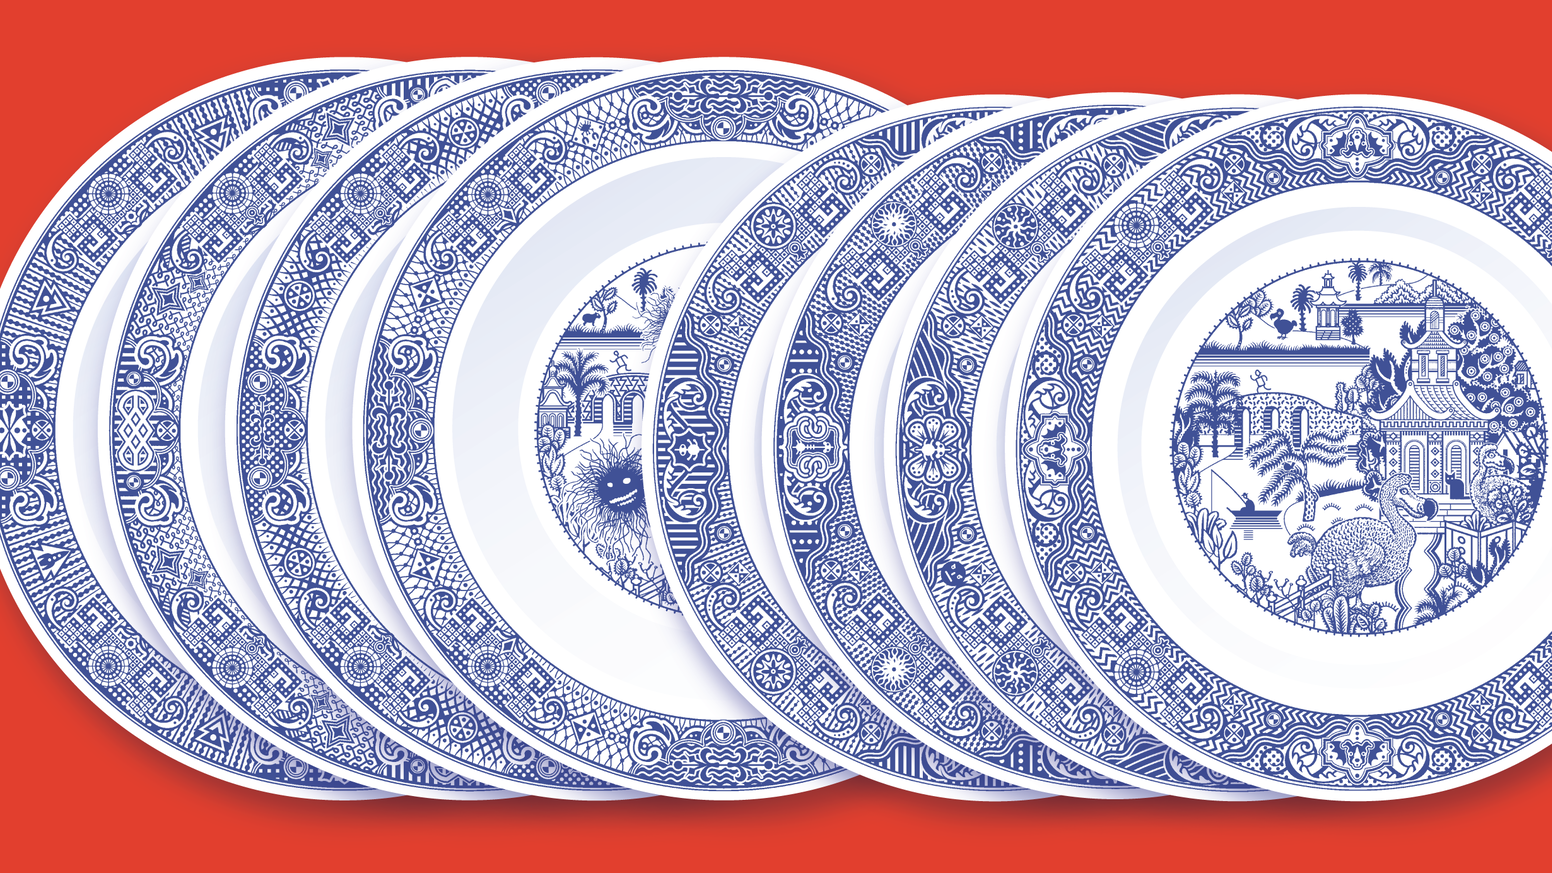 Porcelain bowls and small plates with eight unexpected misfortunes.